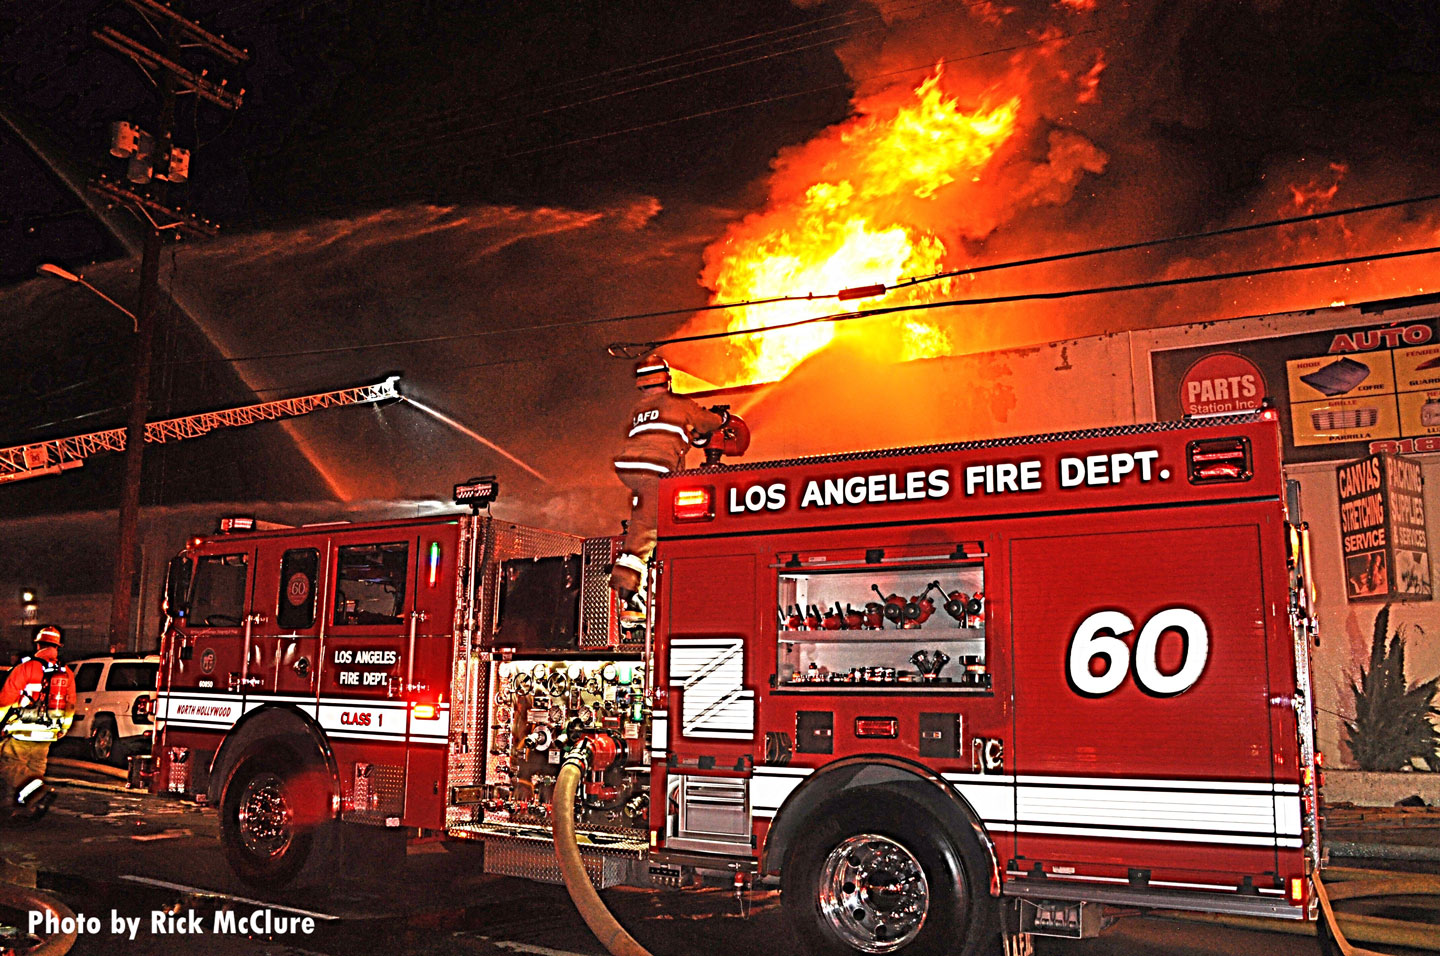 LAFD pumper with deck gun and streams in the distance